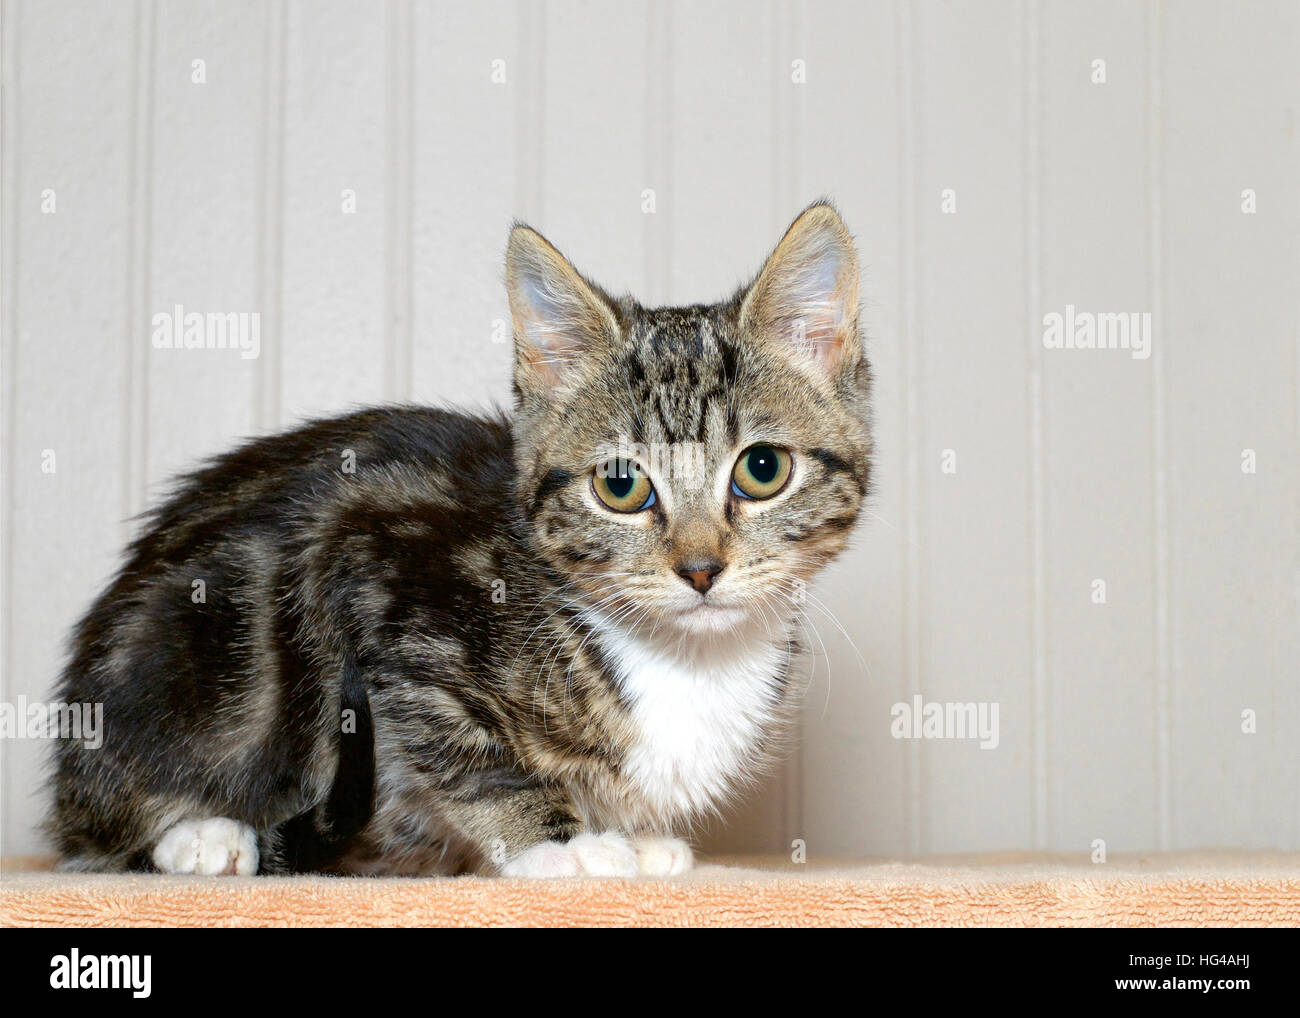 Gray Striped Cat With White Paws